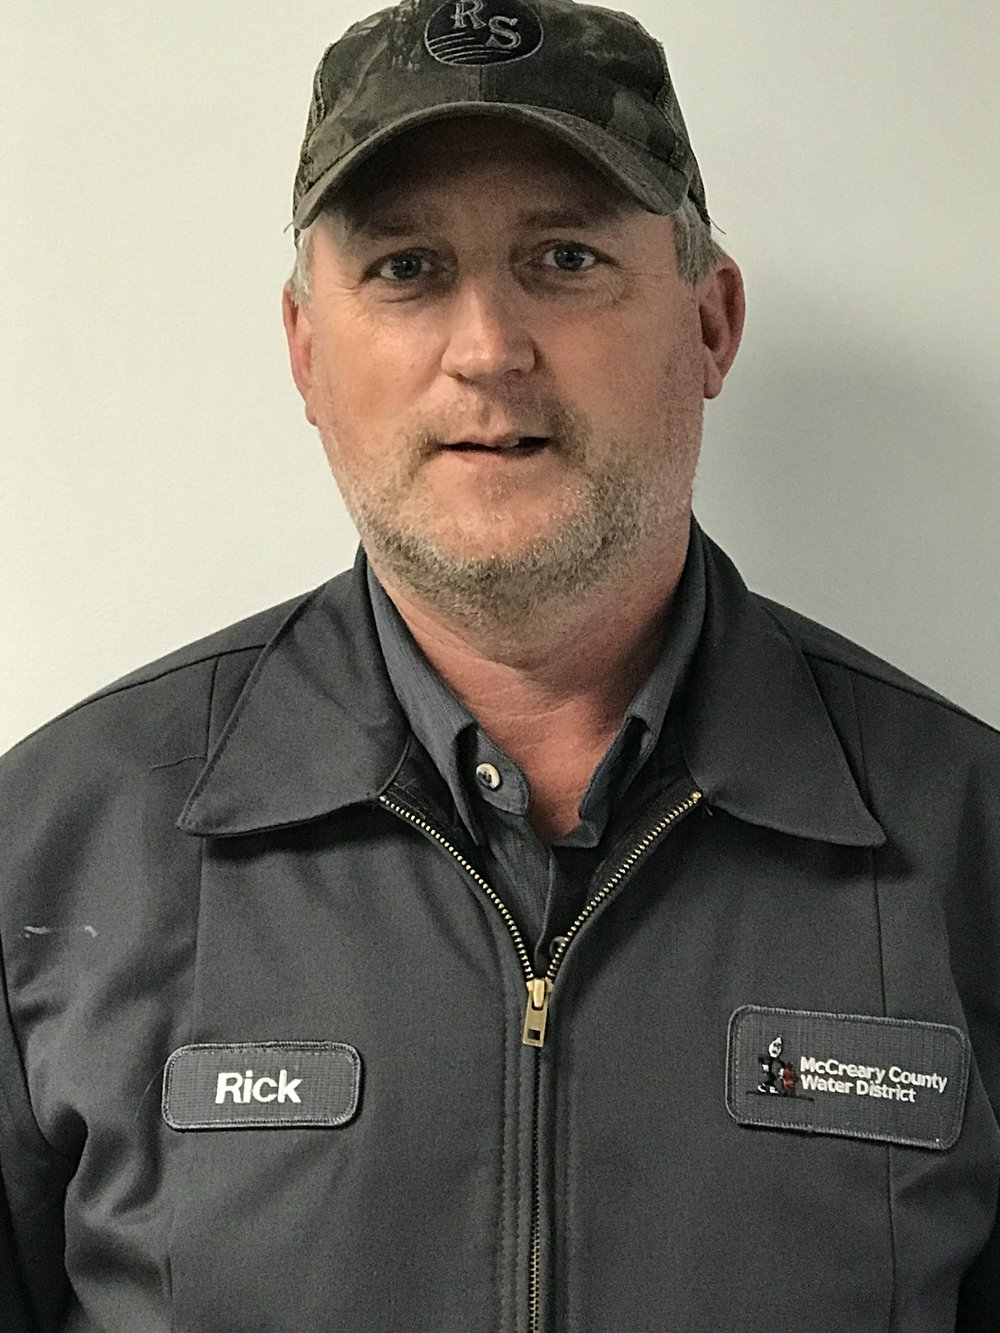 RICK WATTERS  has worked at the water district since 2000 and serves as our Line Crew Foreman. He holds Drinking Water Distribution Class IV and Waste Water Collection Class II Certifications.